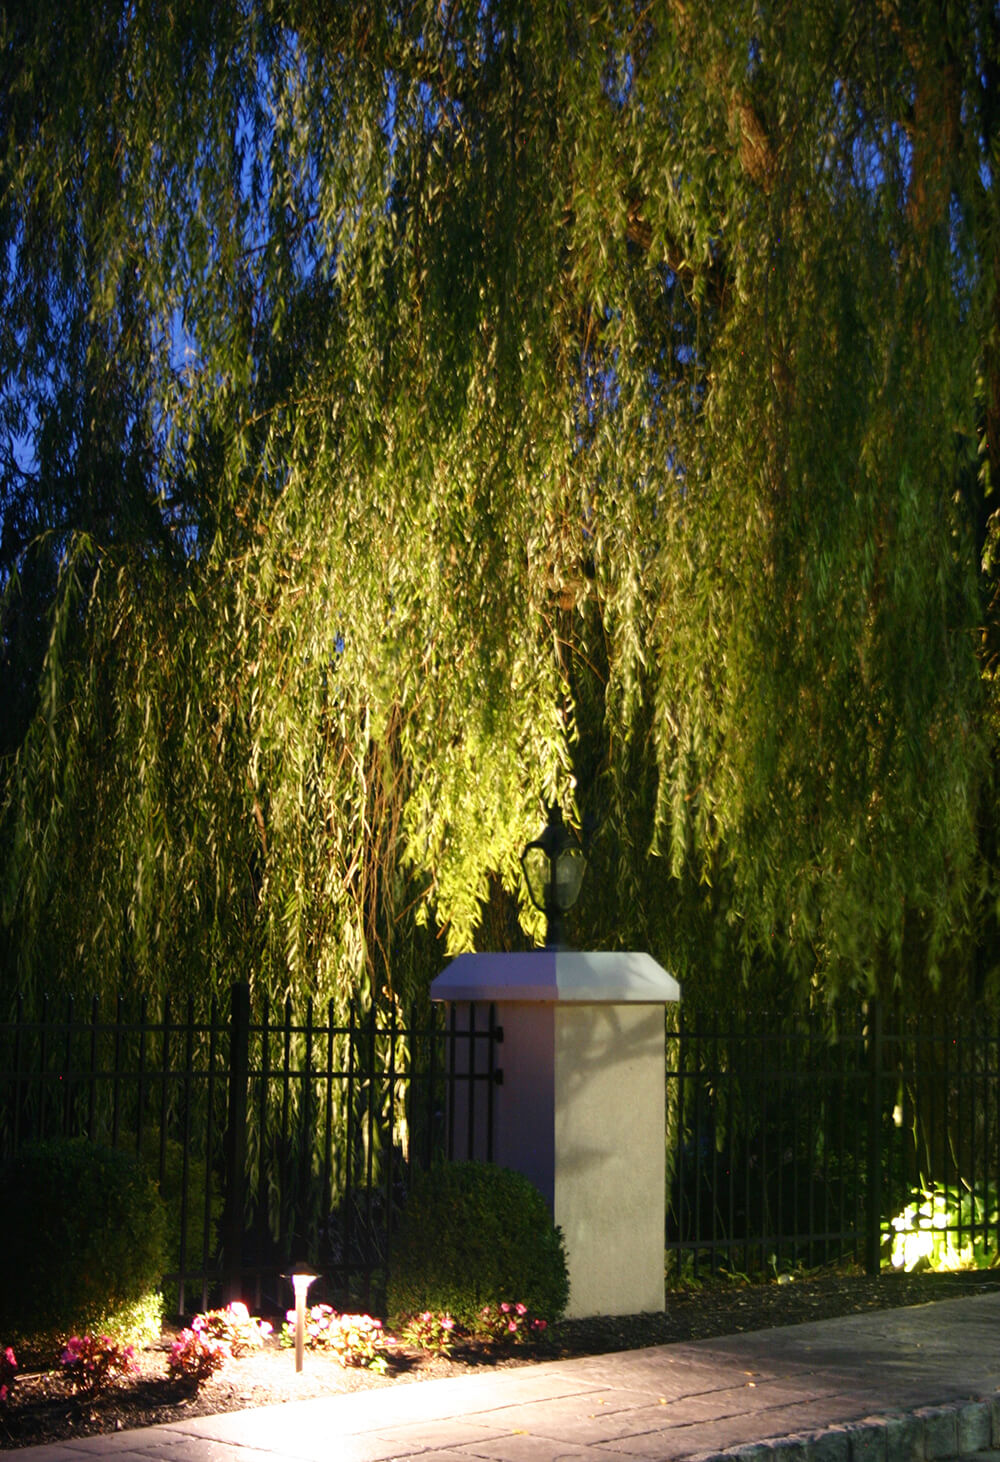 Weeping willow with specialty lighting